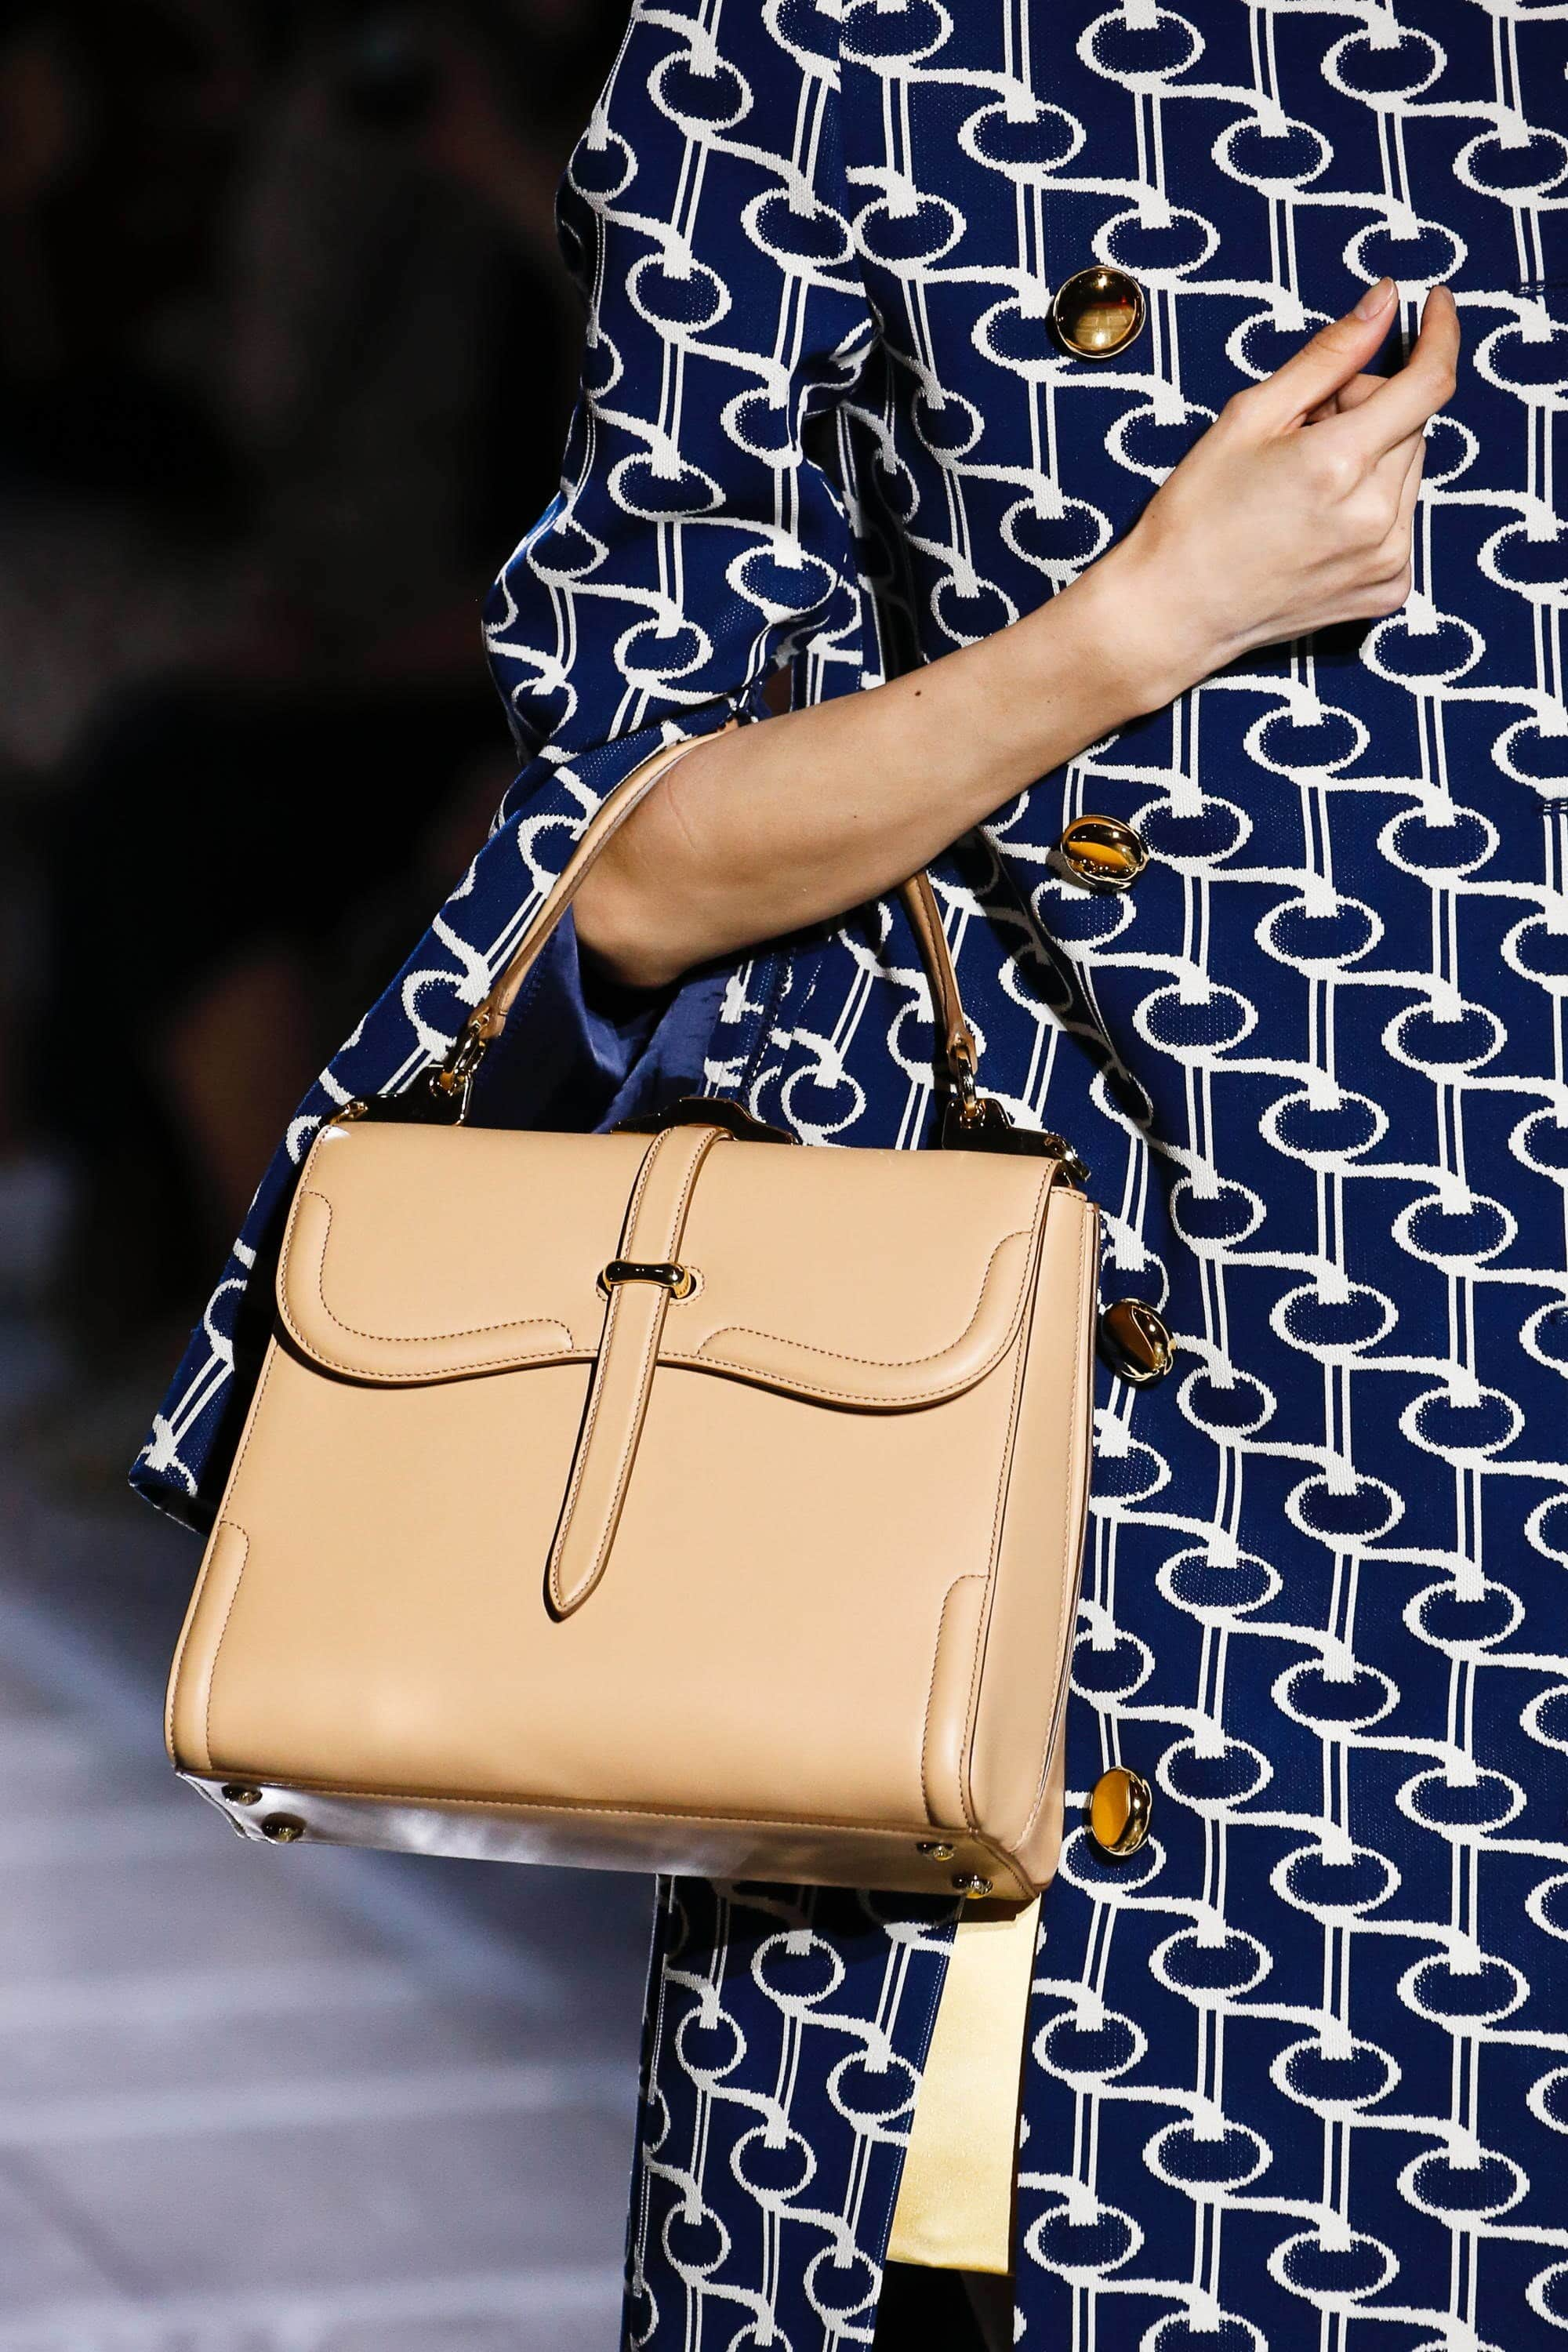 Prada Spring Summer 2019 Runway Bag Collection Spotted